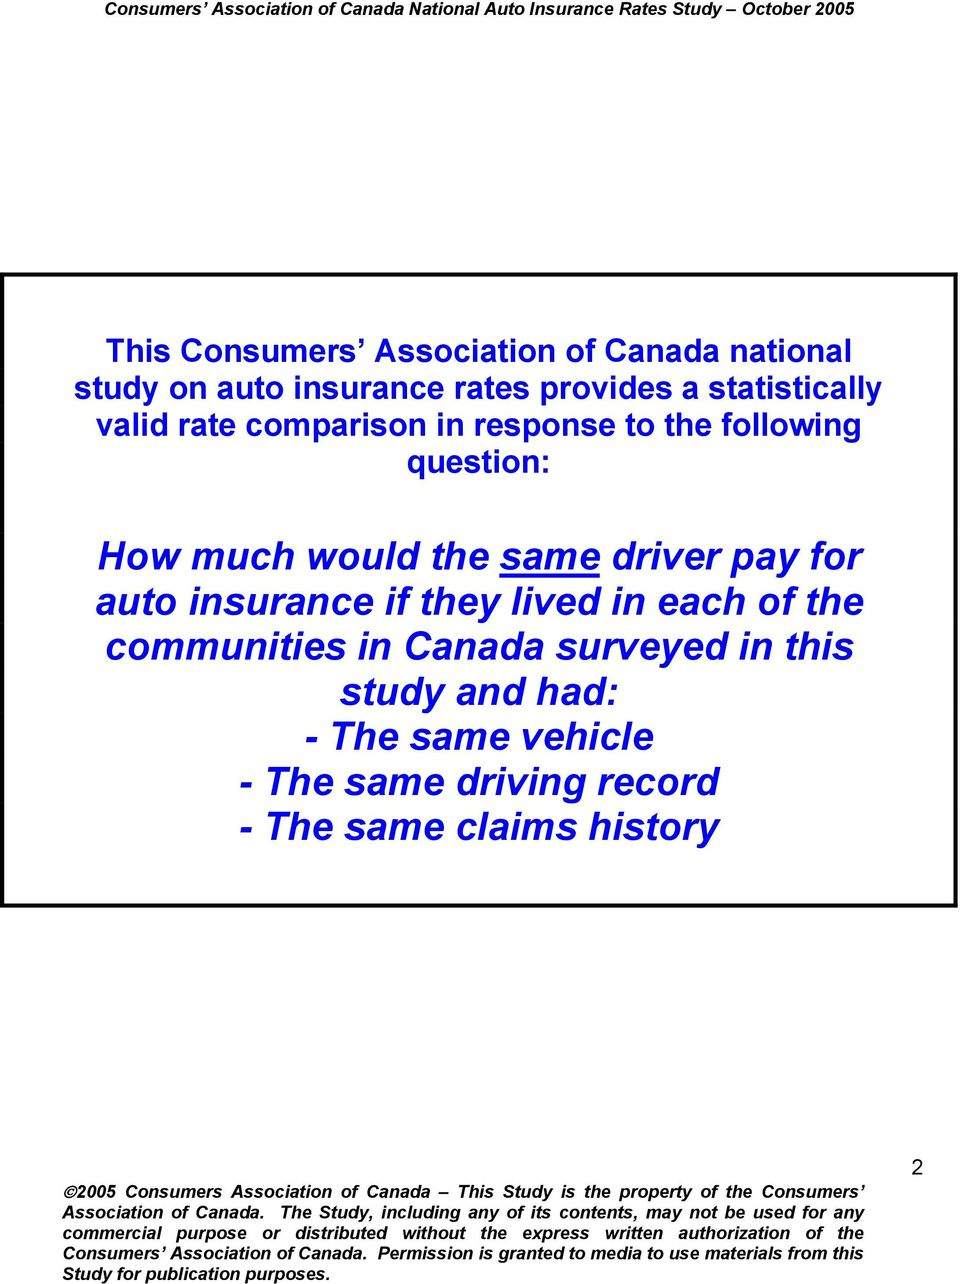 the same driver pay for auto insurance if they lived in each of the communities in Canada